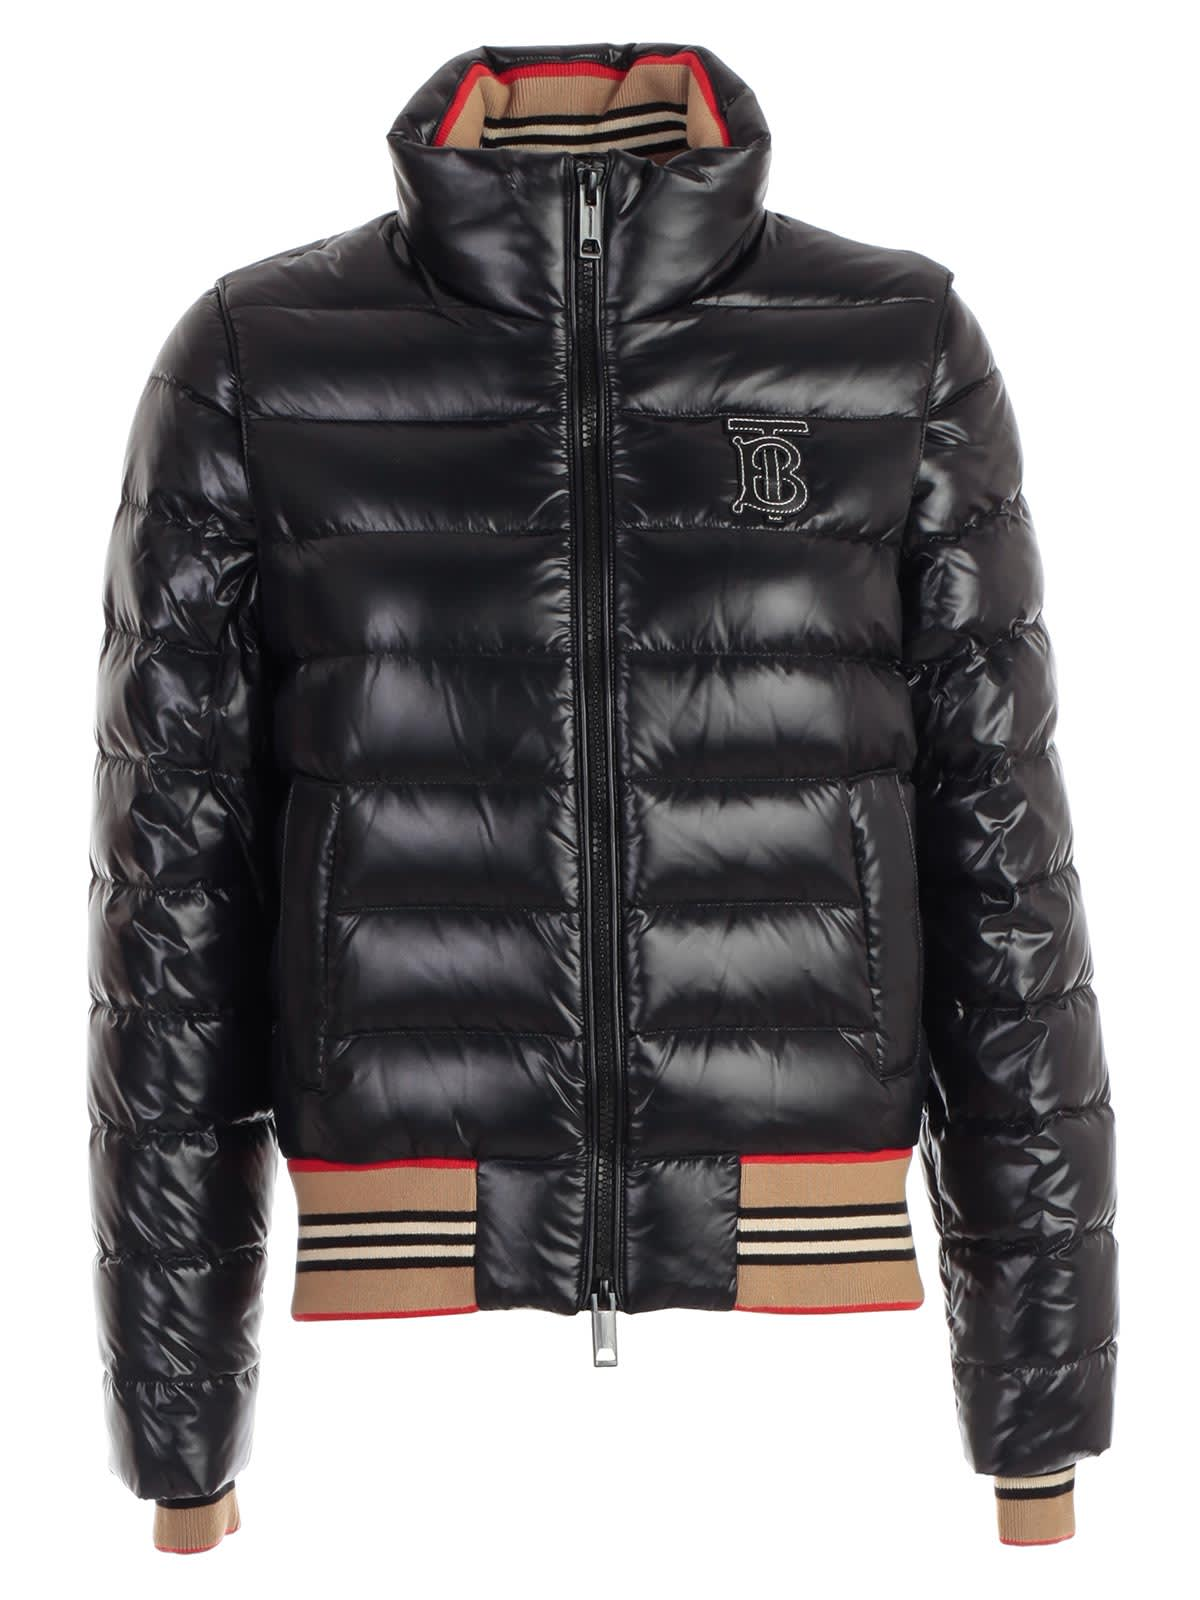 Burberry Hessle Sl 803 111710 Padded Jacket